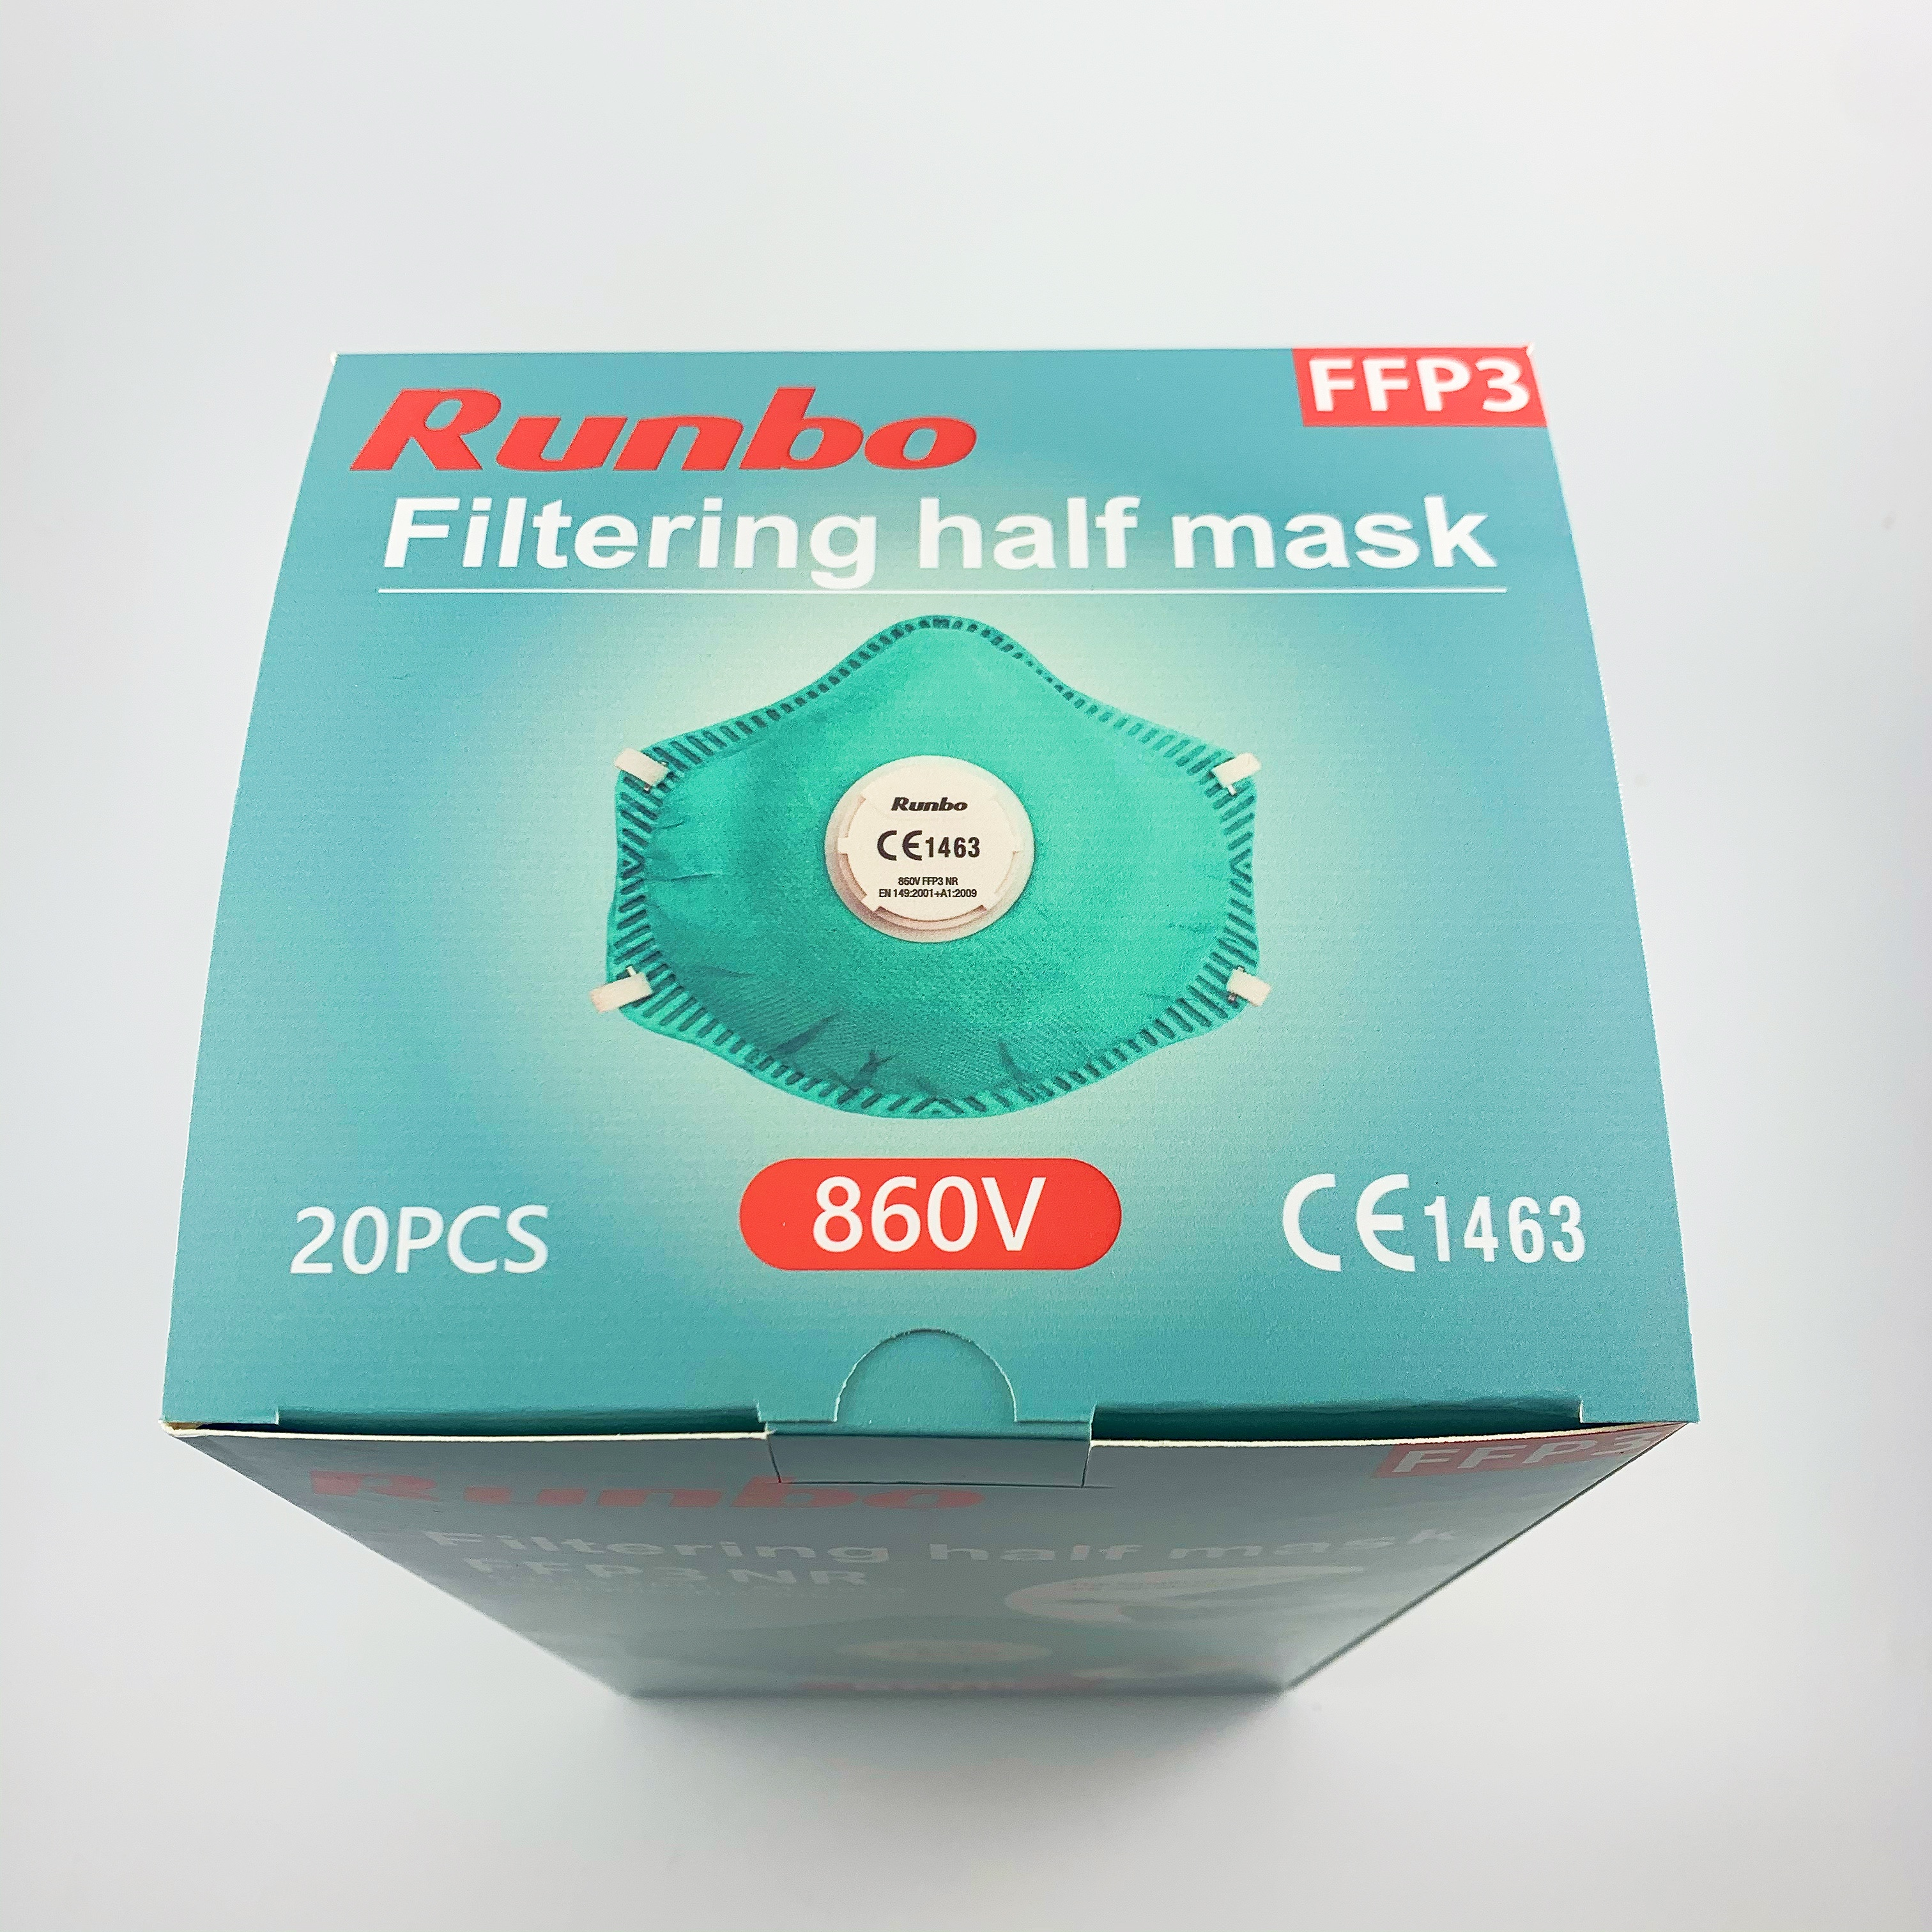 Wholesale Mask Machine - EN149 FFP3 face mask with breathing valve Professional manufacturer respirator face ffp3 mask – AKF Medical detail pictures